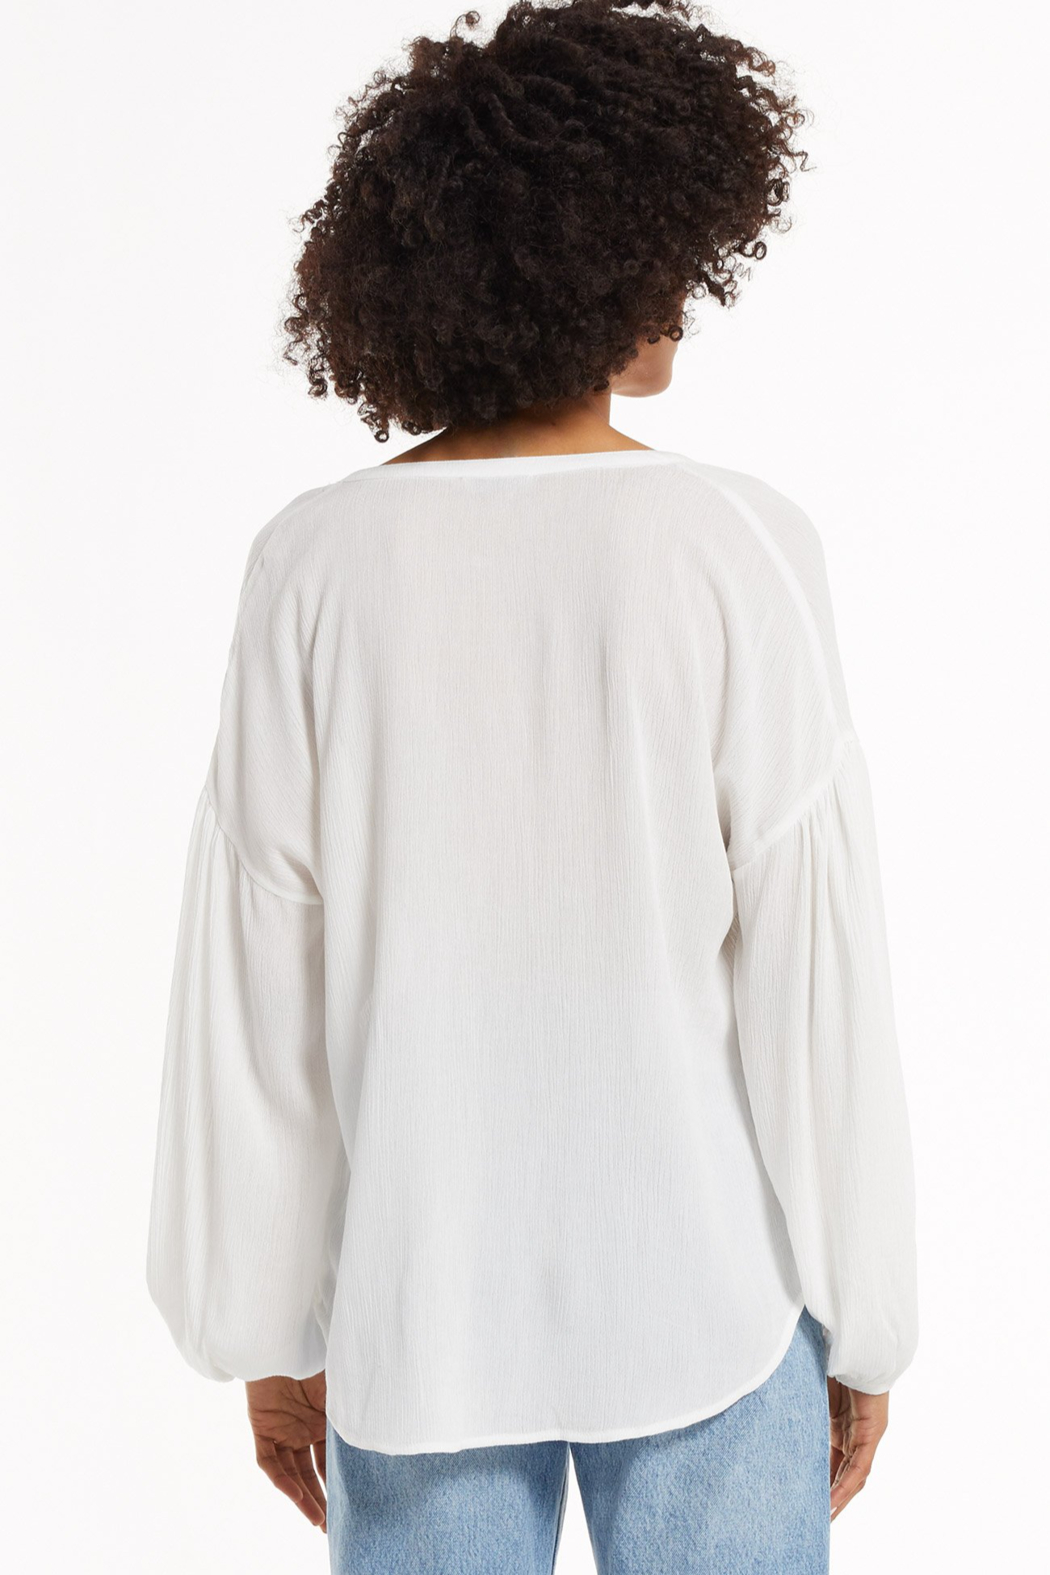 z supply Bayfront Woven Top - Back Cropped Image